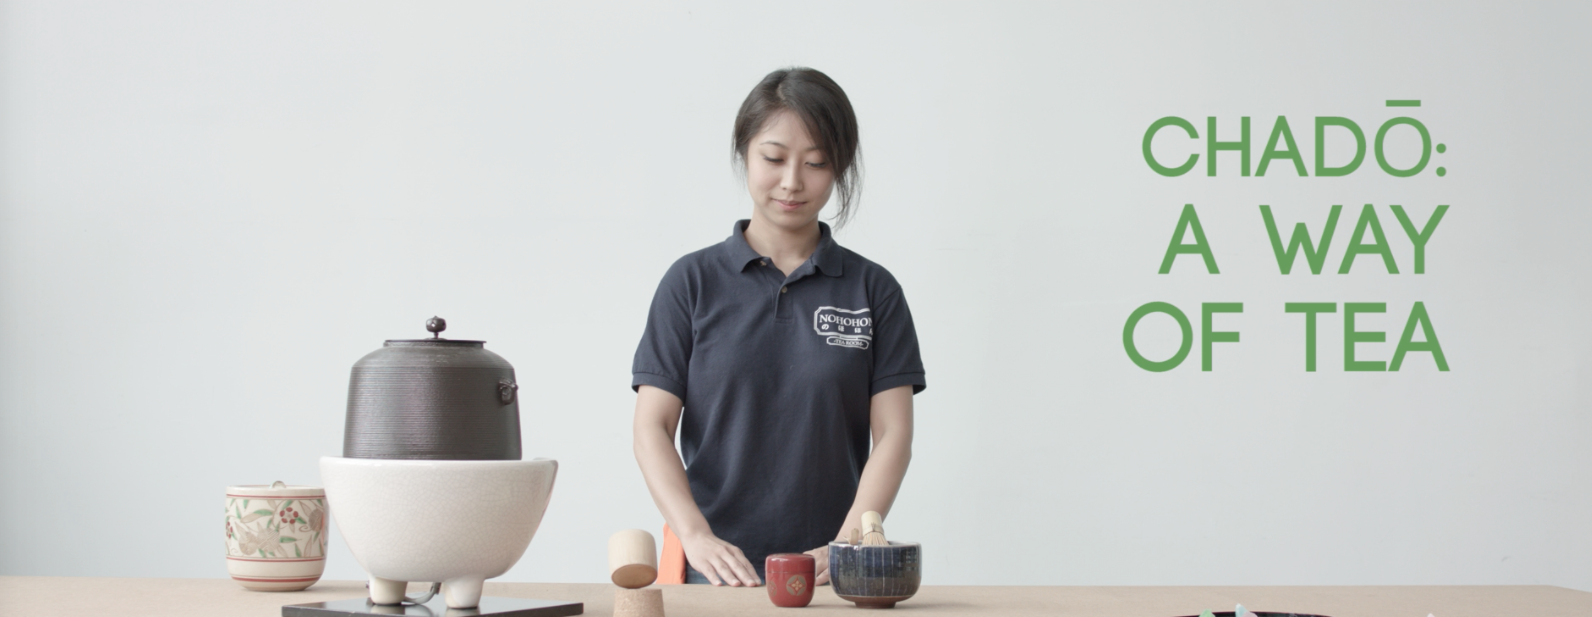 Chado: A Way of Tea (2018): Co-director & producer - A 5 min. short documentary about a Toronto based Japanese matcha maker.